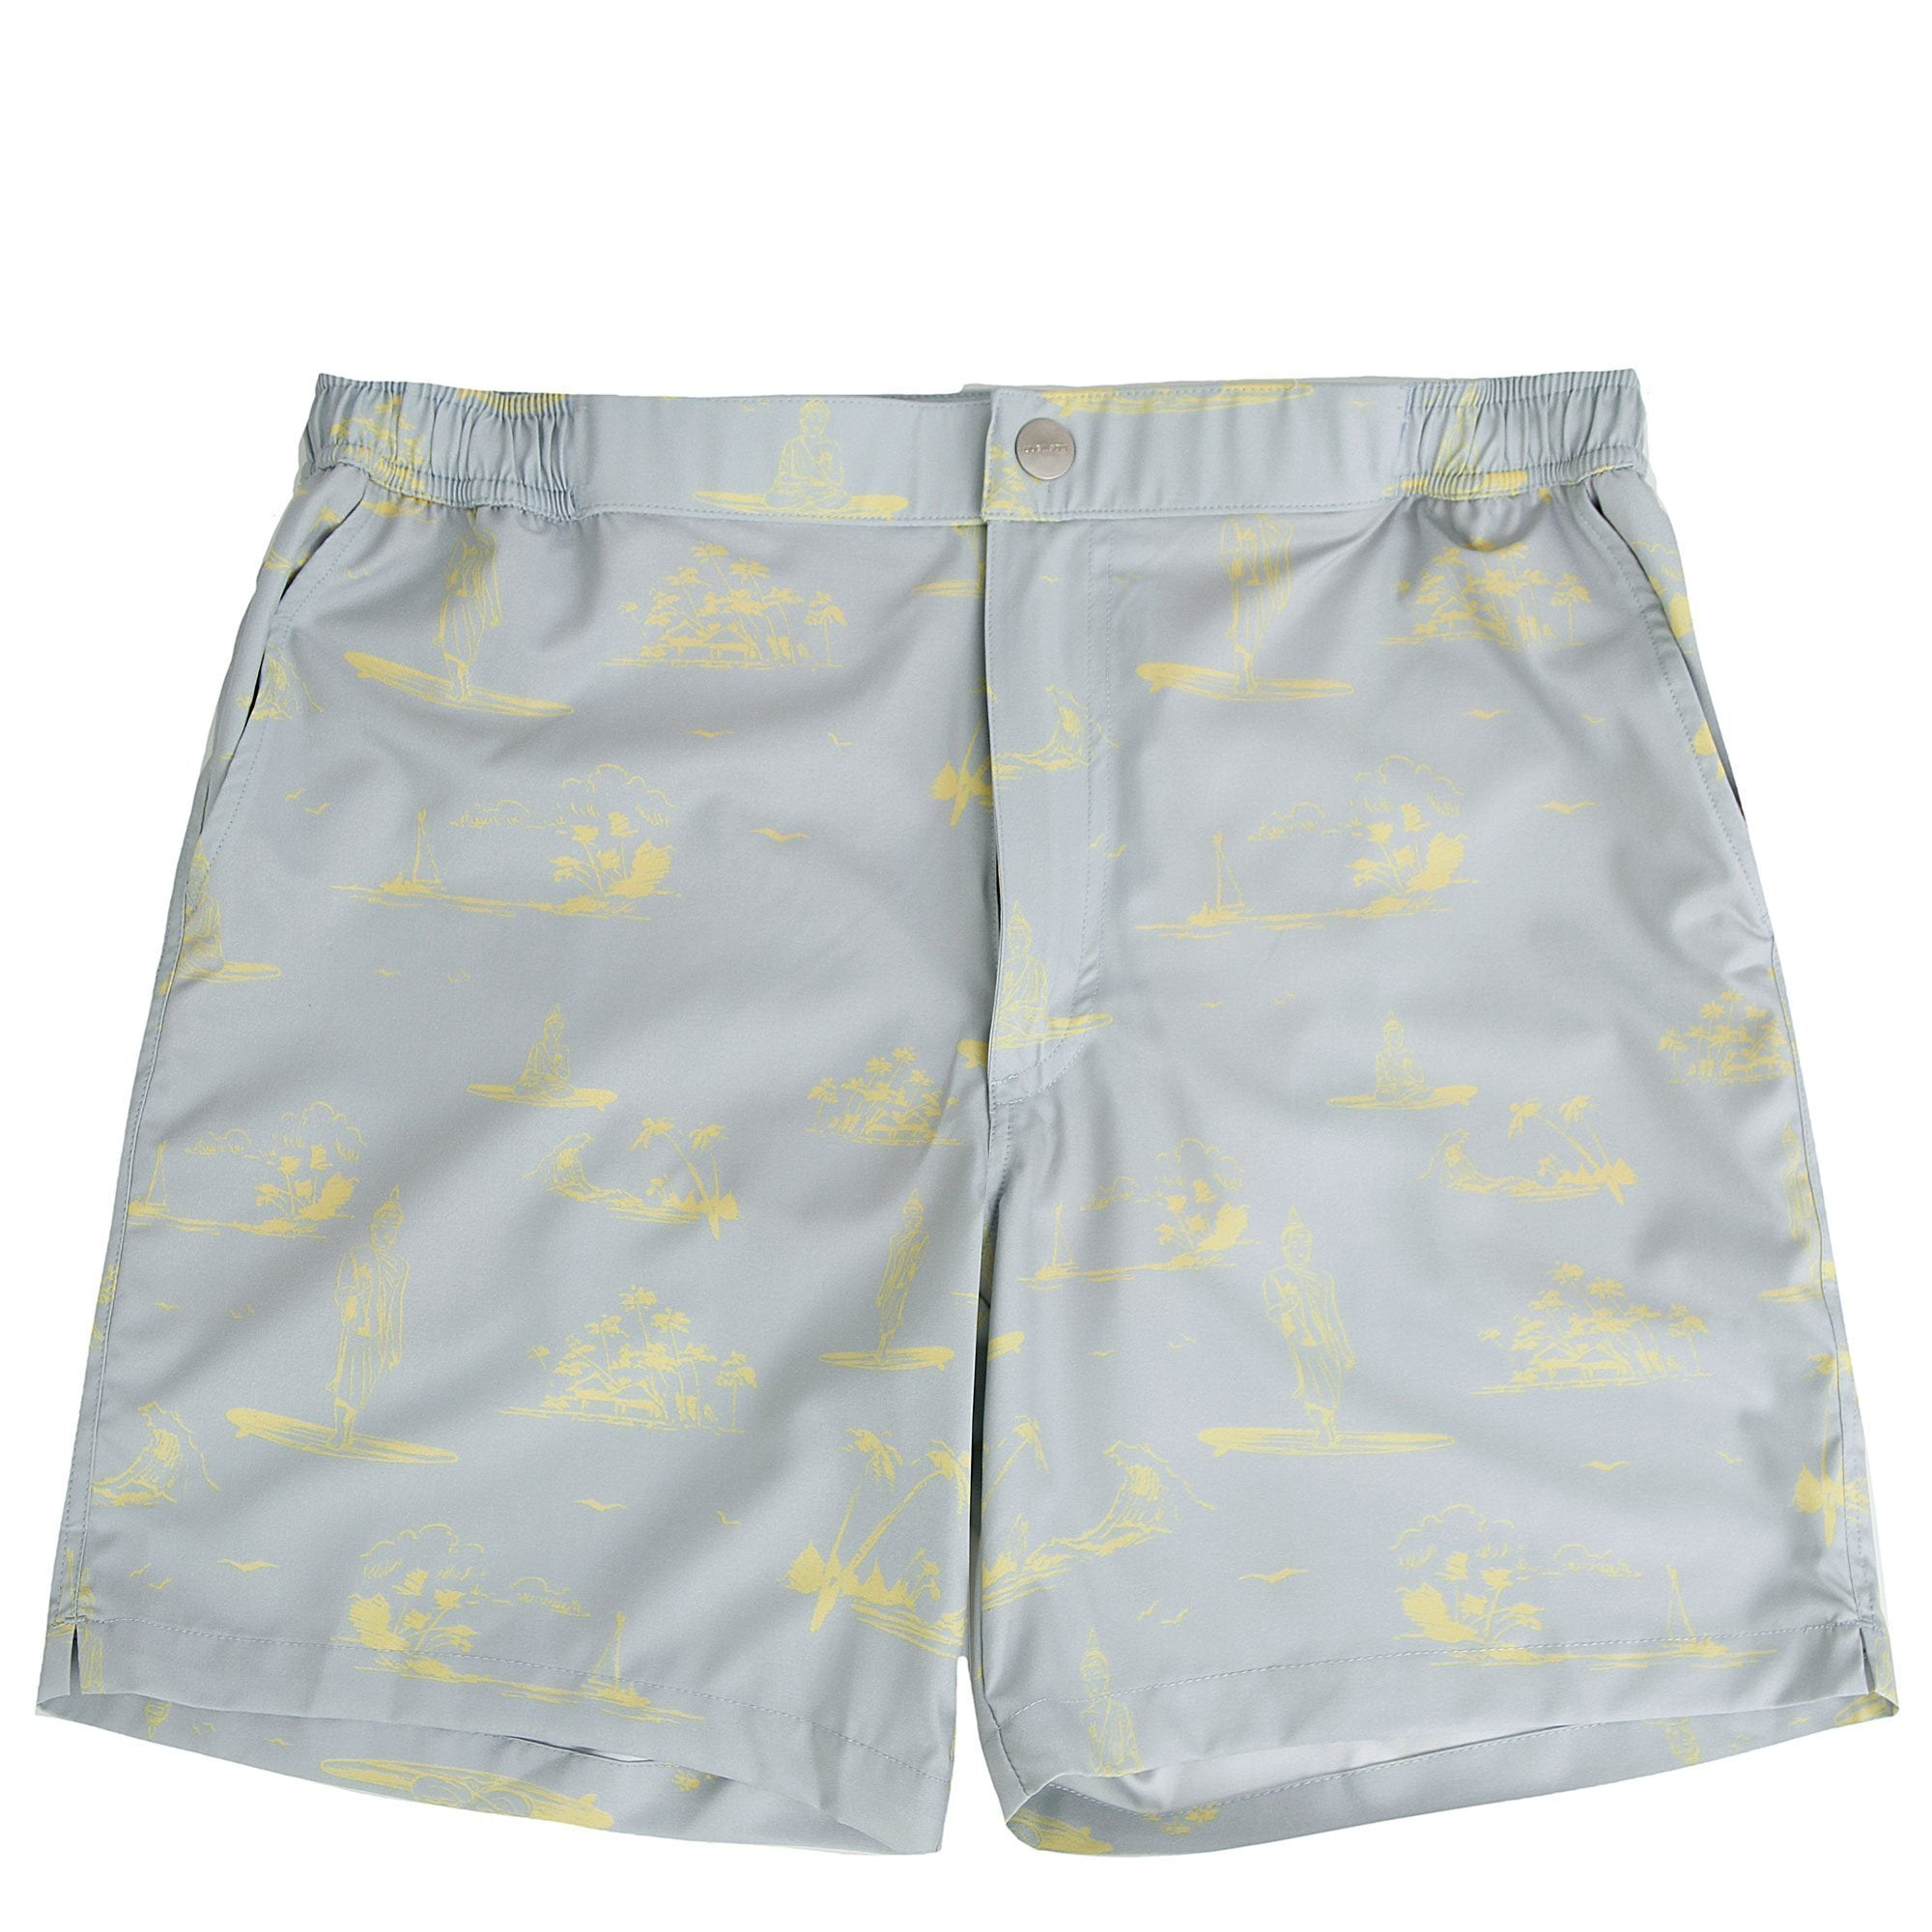 Men's%20Swim%20Shorts%20grey.jpg